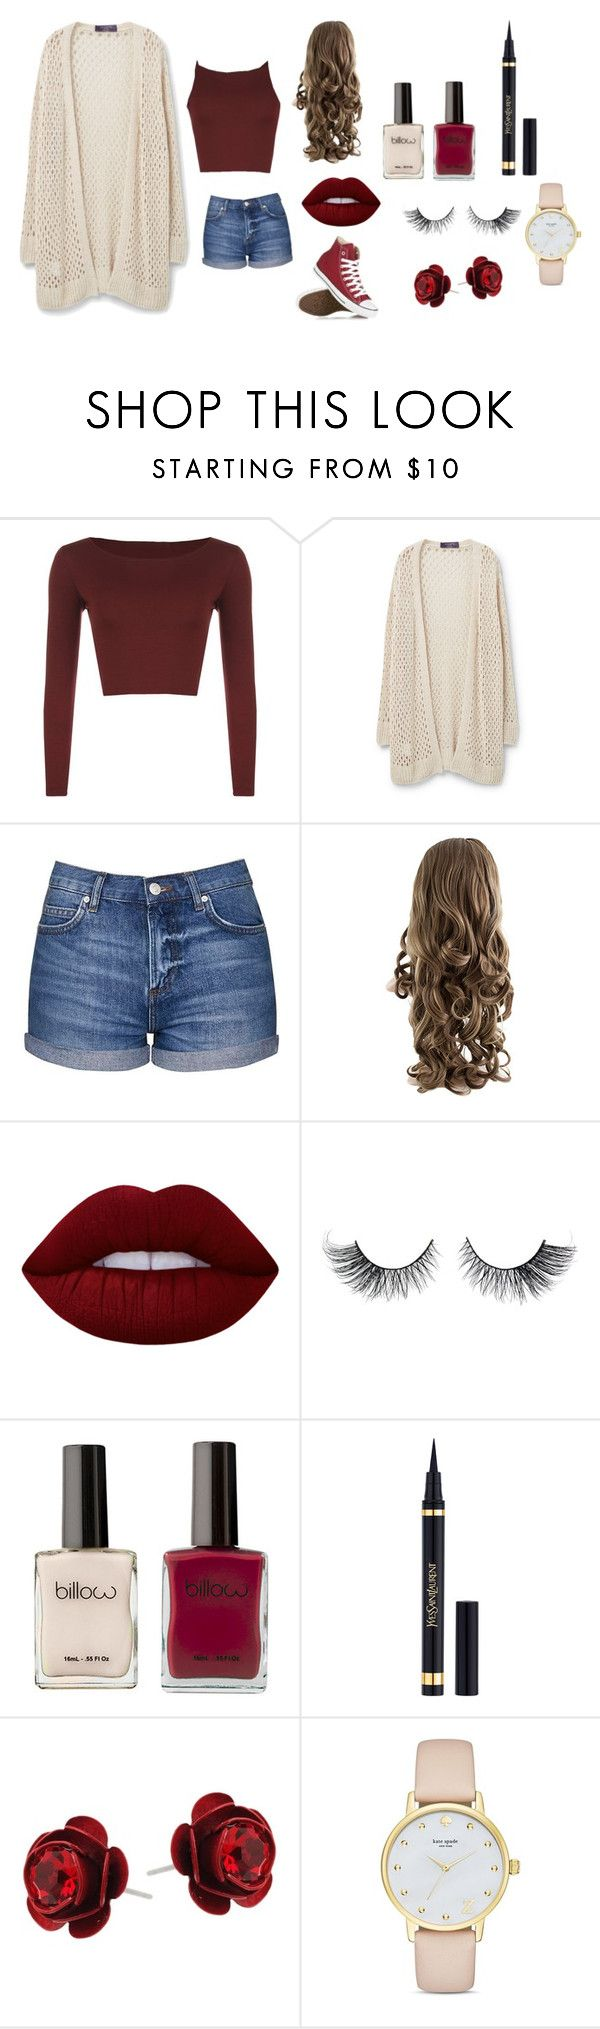 """""""MAROOONN"""" by fashionndivaa ❤ liked on Polyvore featuring WearAll, Violeta by Mango, Topshop, Lime Crime, Converse, Yves Saint Laurent, Michal Negrin and Kate Spade"""